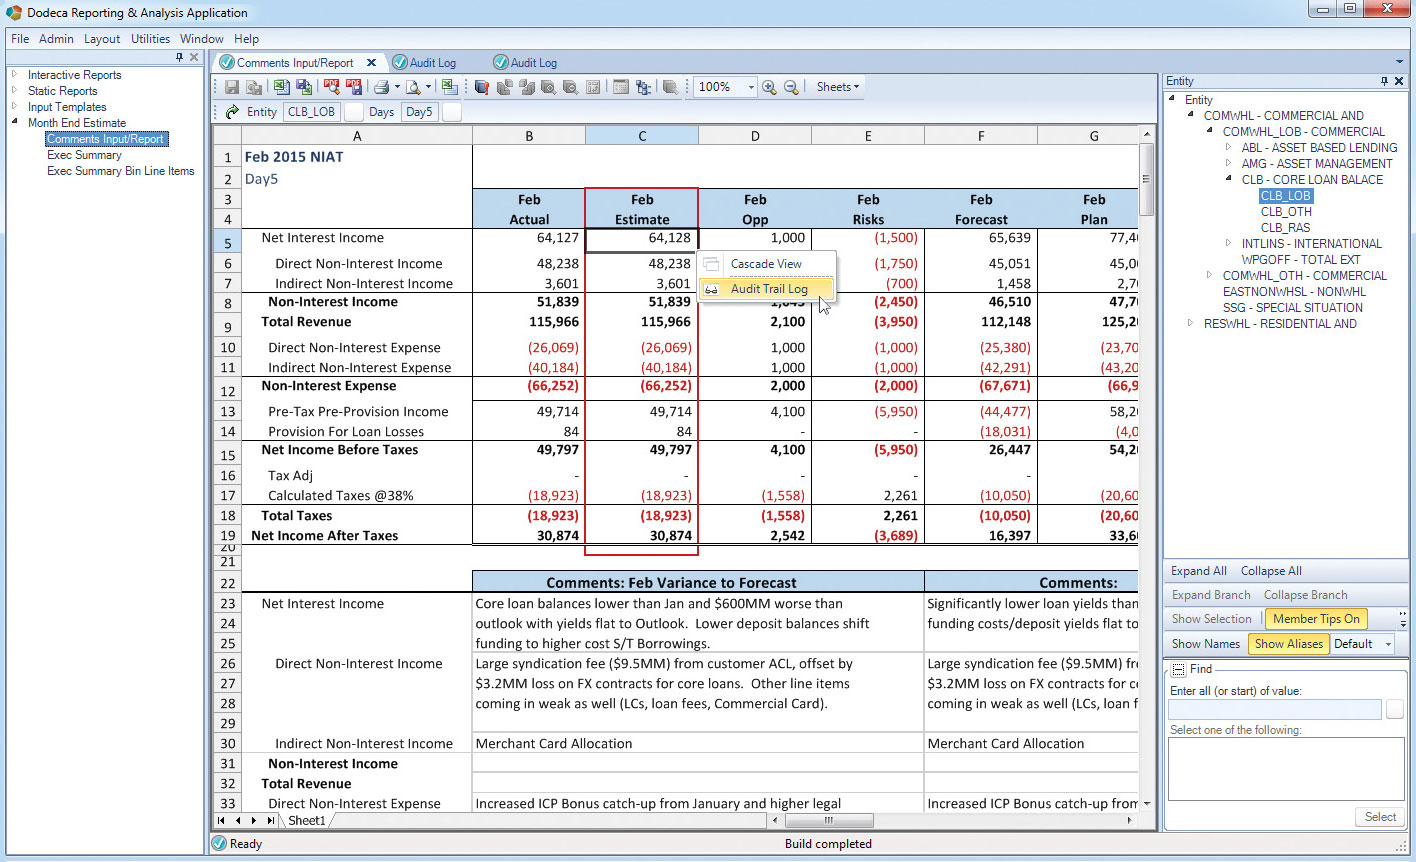 Spreadsheet Software Packages Intended For Managing Spreadsheet Risk: Dodeca Spreadsheet Management System